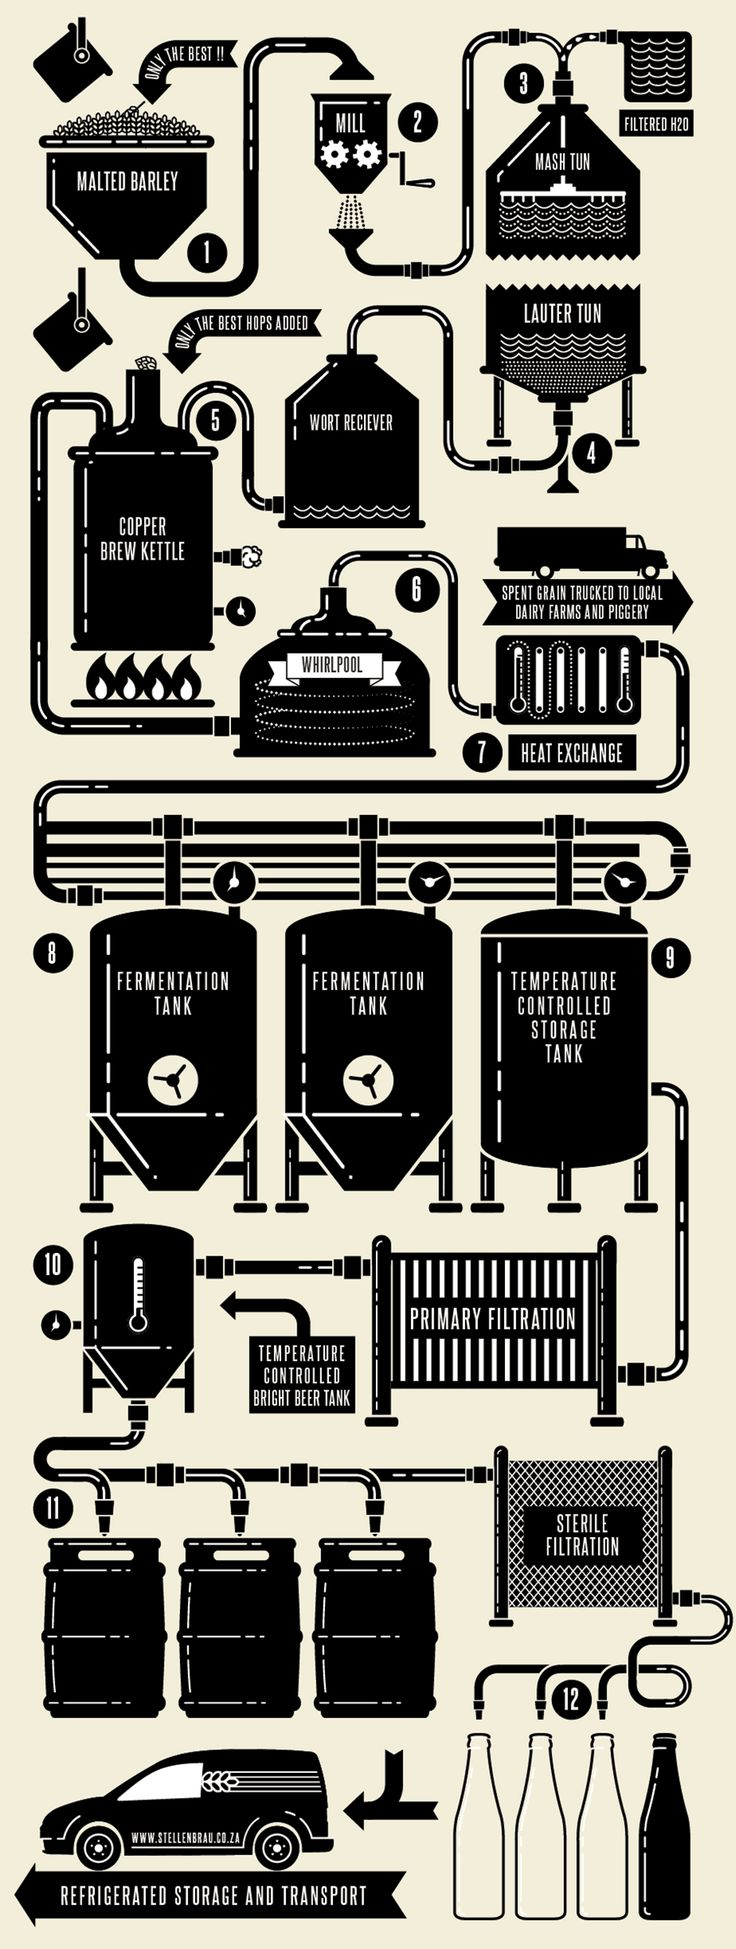 31 best images about the brewing process illustrated on for Brewery layout software